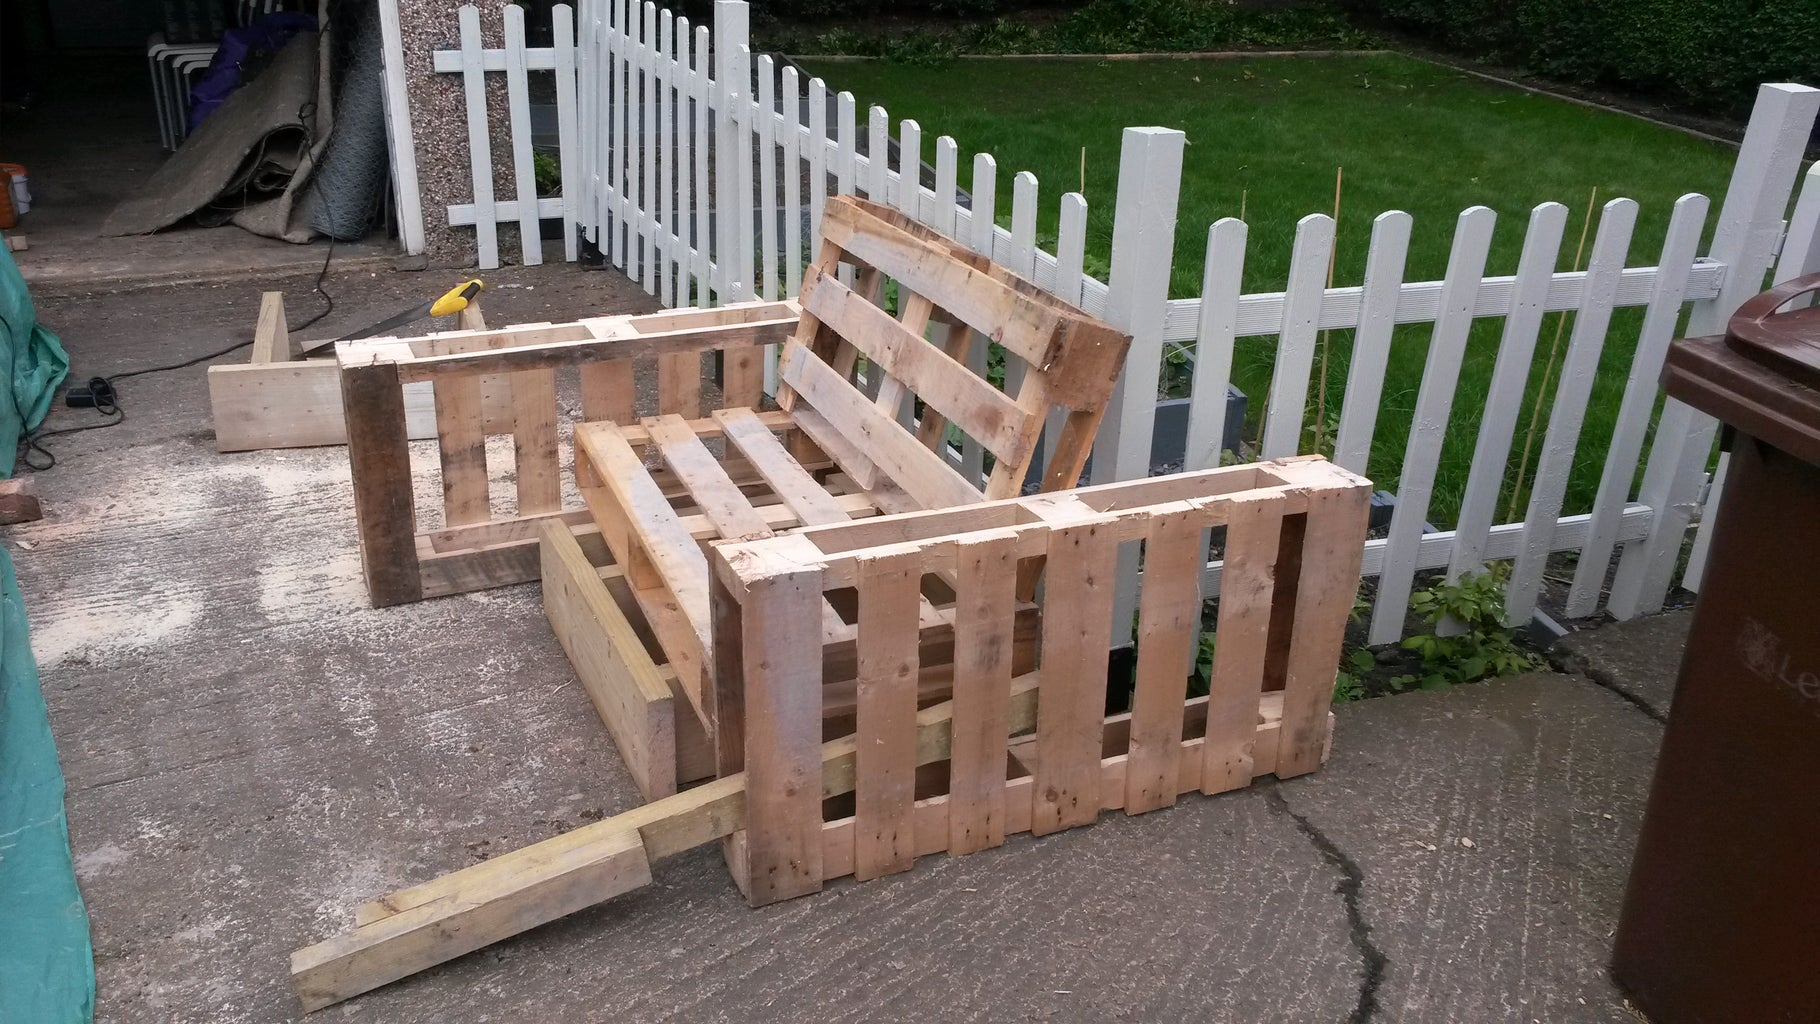 Cut the Two Pallets in Half